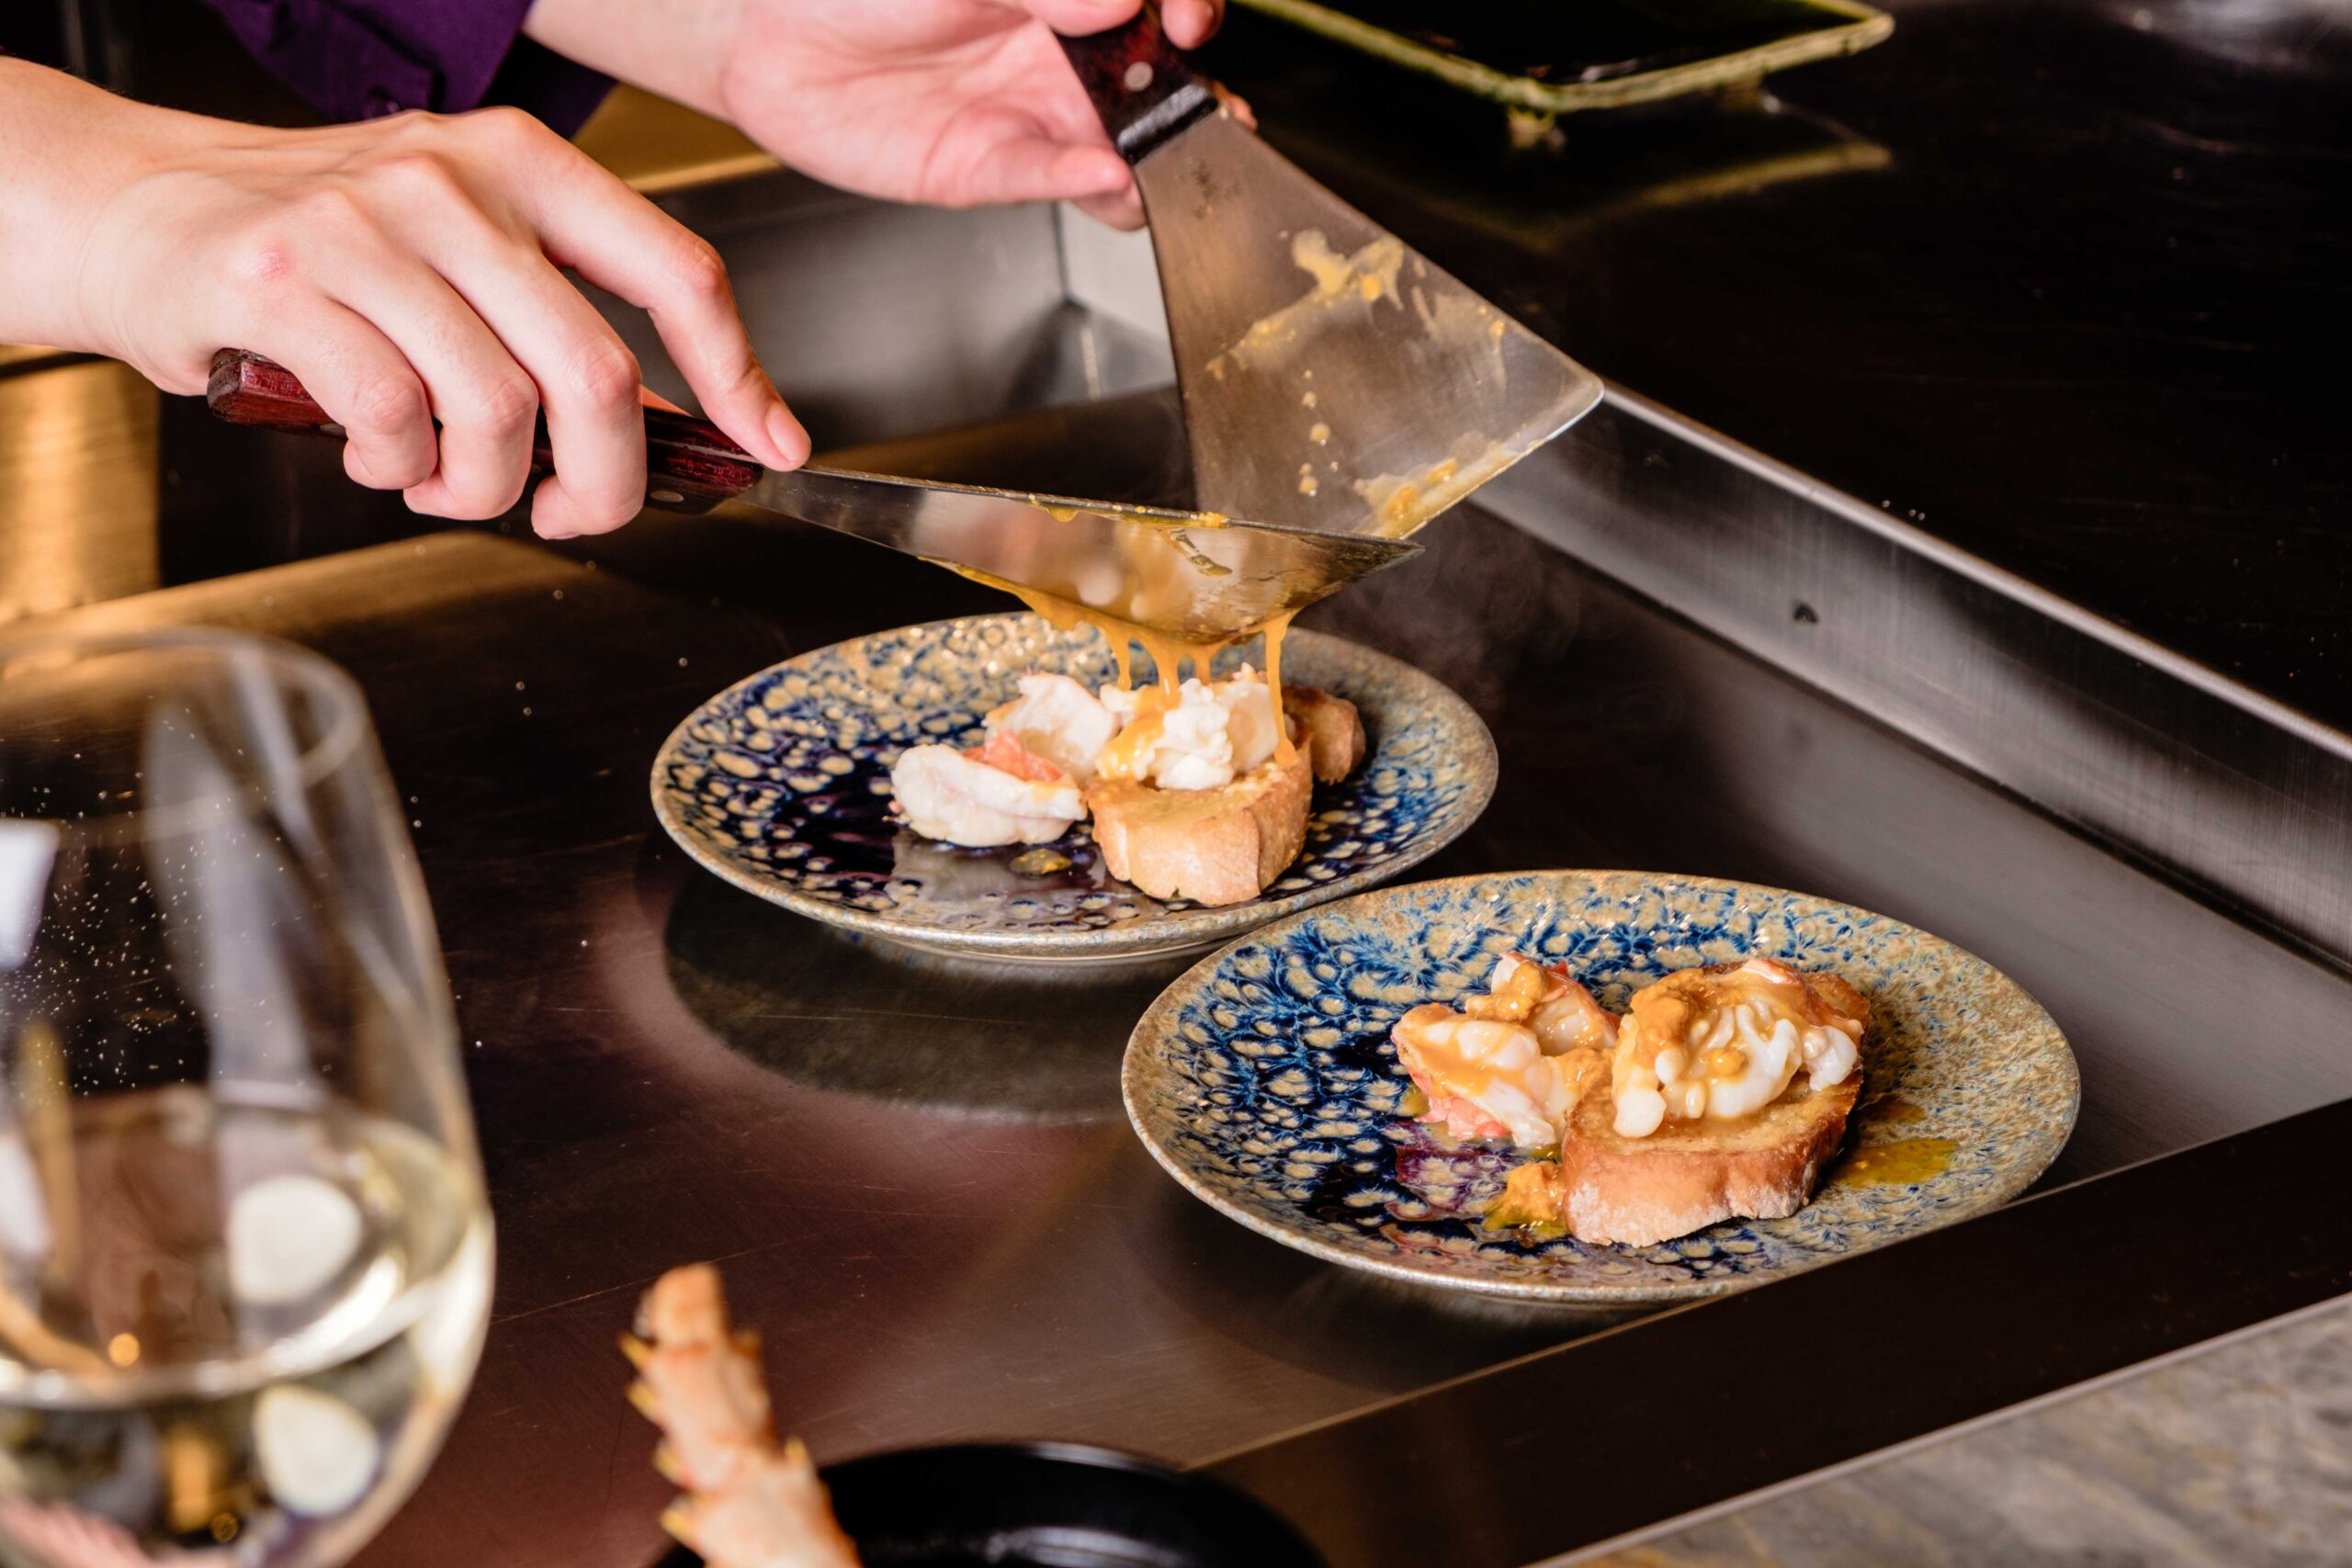 The Loop HK 30 Best Eats 2020 Best Dish (Individual): Lobster tail with coral butter, Crown Super Deluxe